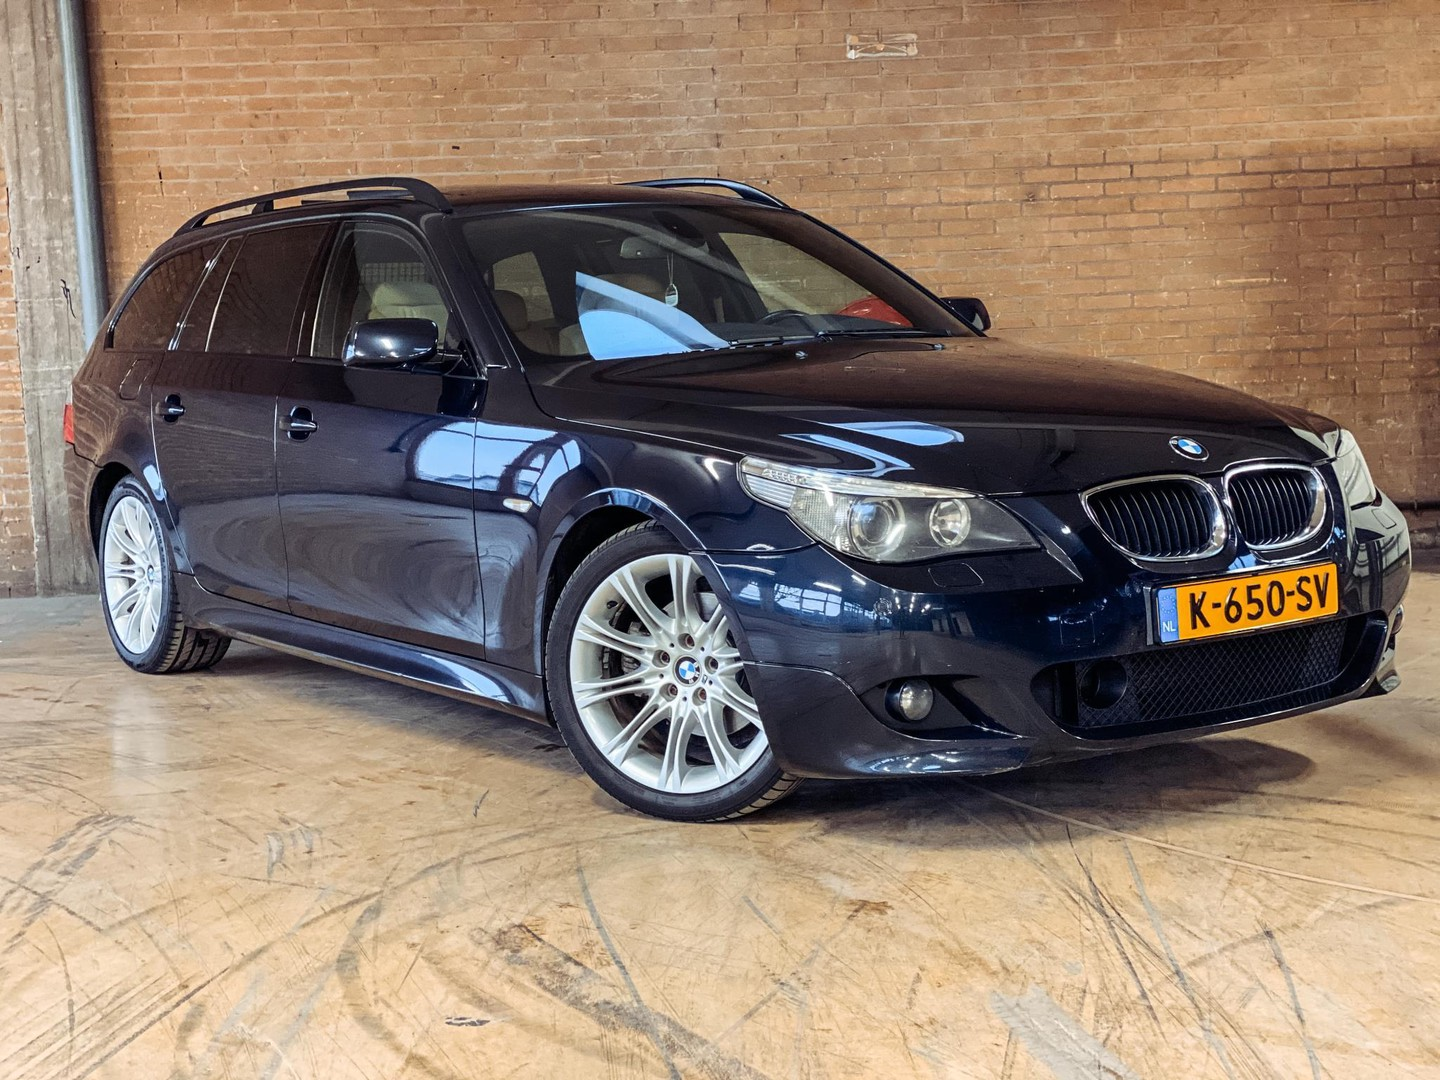 Bmw 5 serie Touring 525d high executive youngtimer! m-sport/ leder/ panoramadak/ adaptive cruise/ bom vol opties! 1e eigenaar!